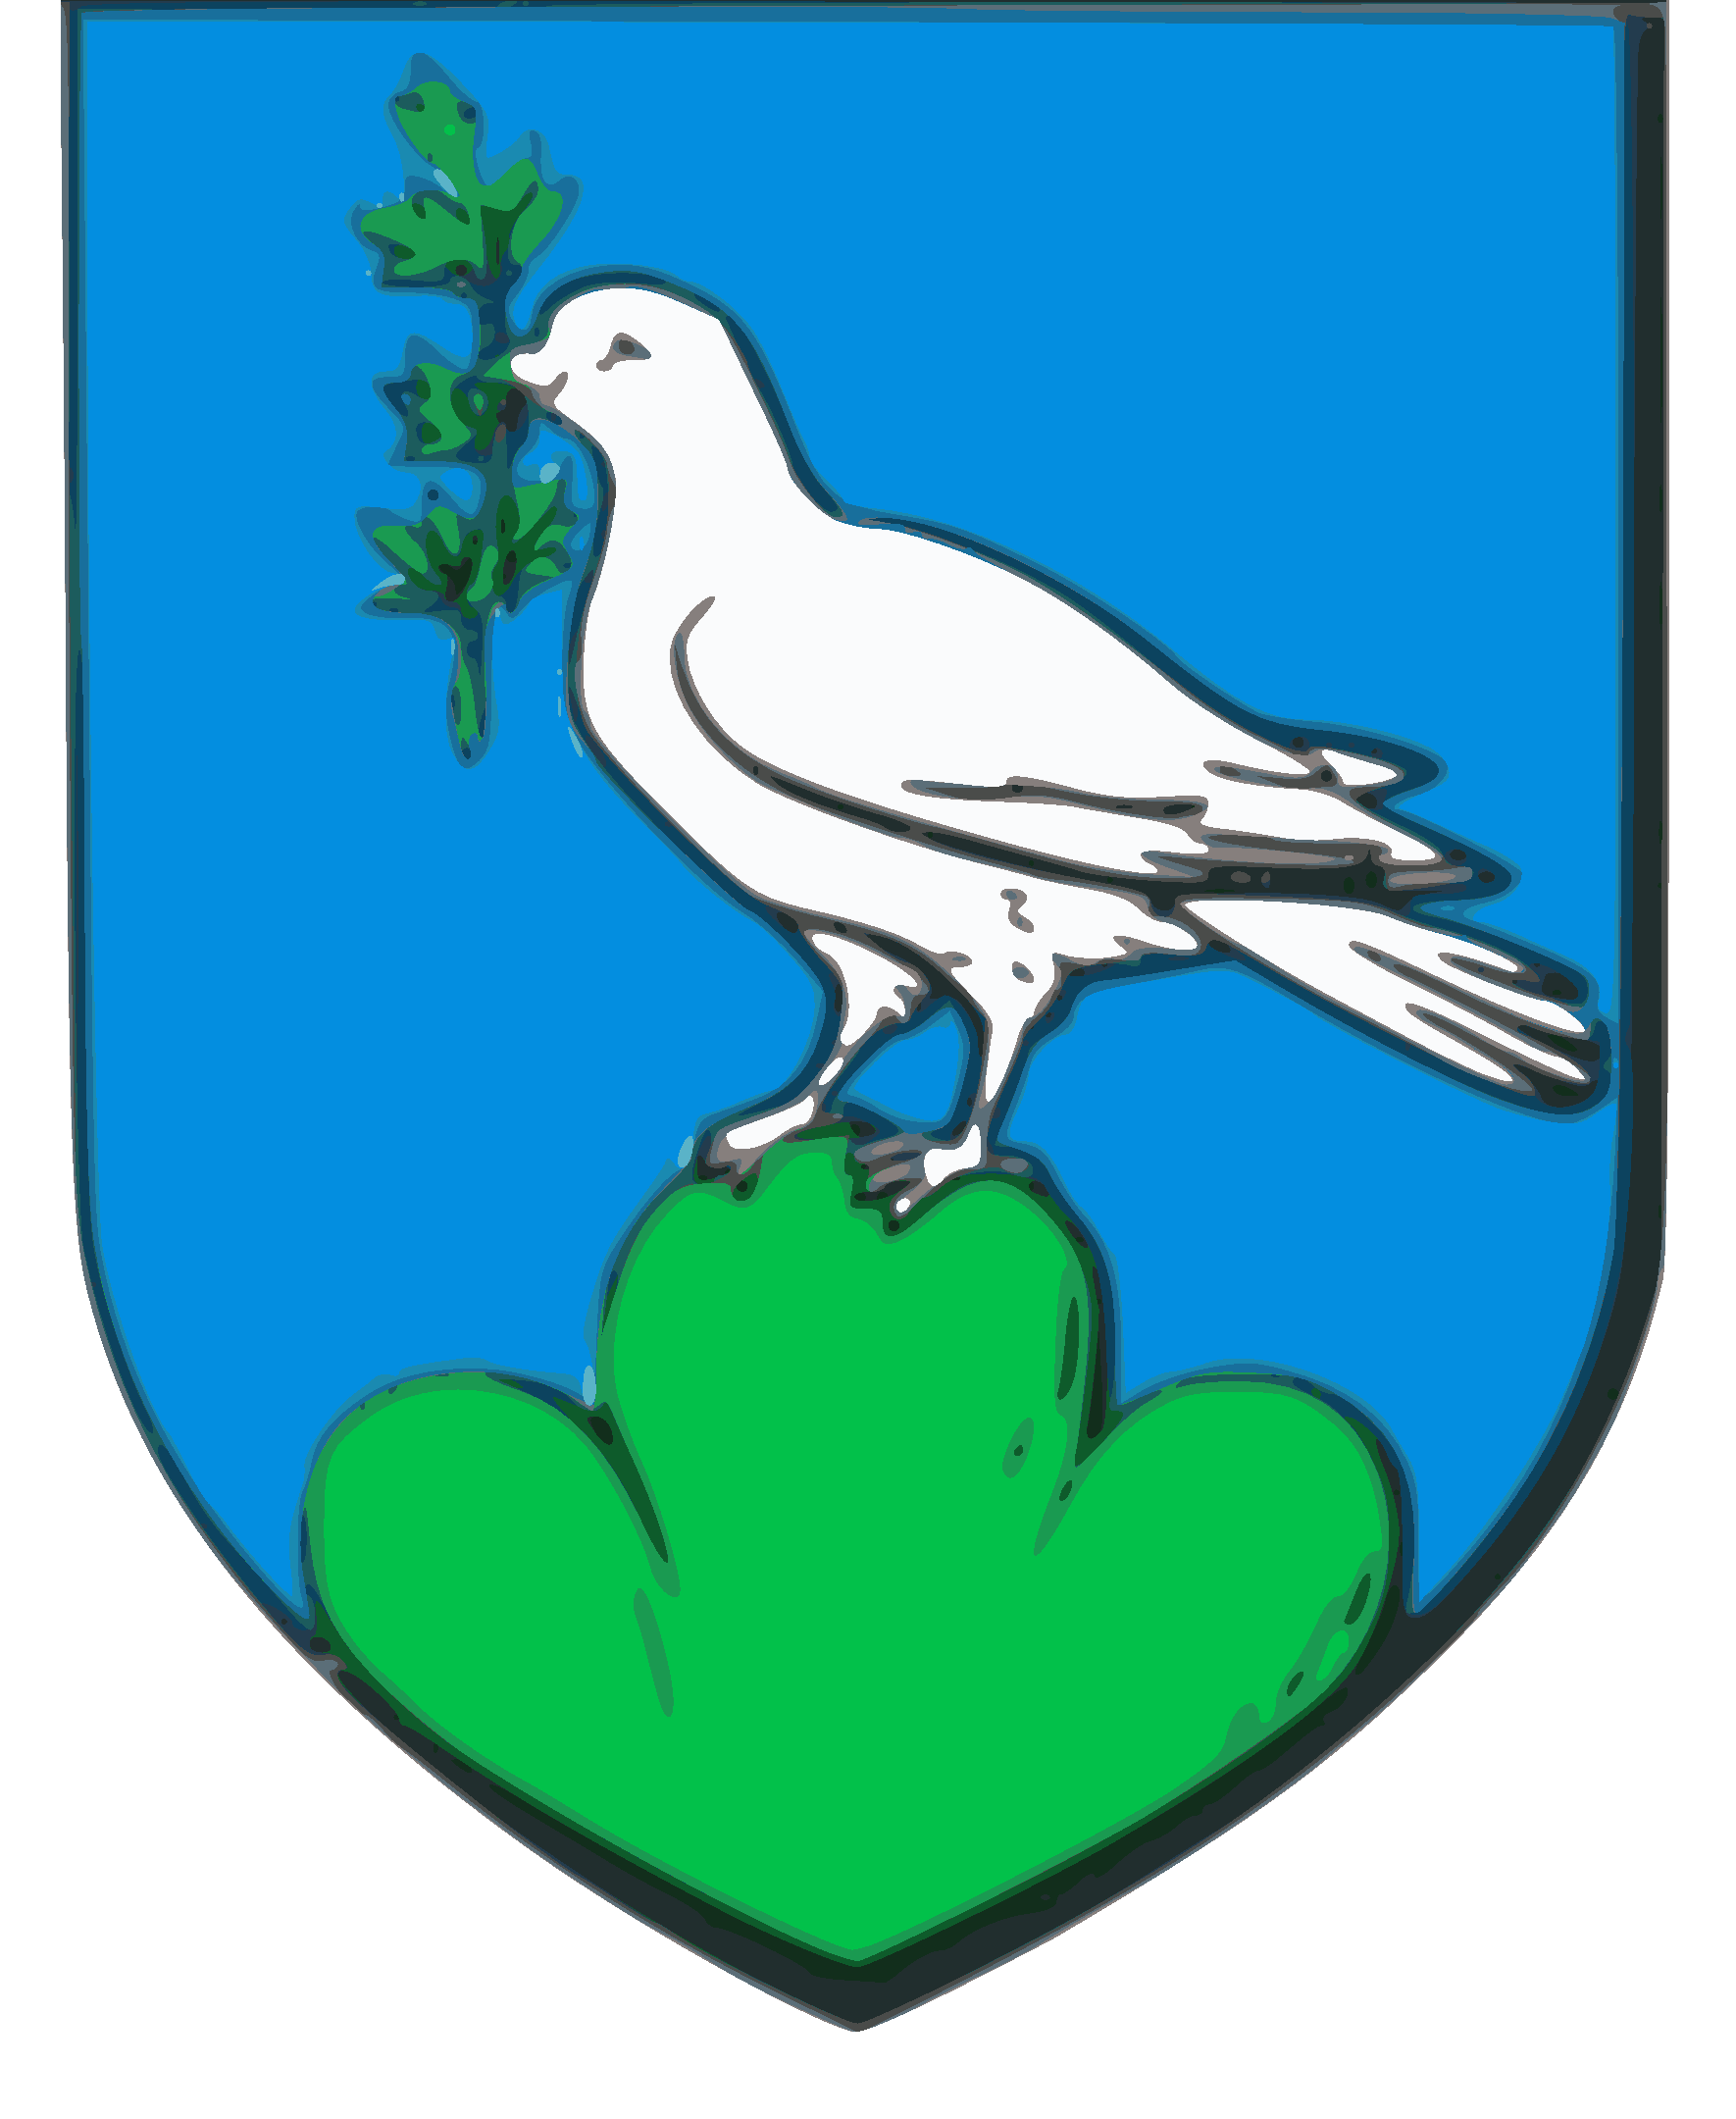 Commune d'Altenheim